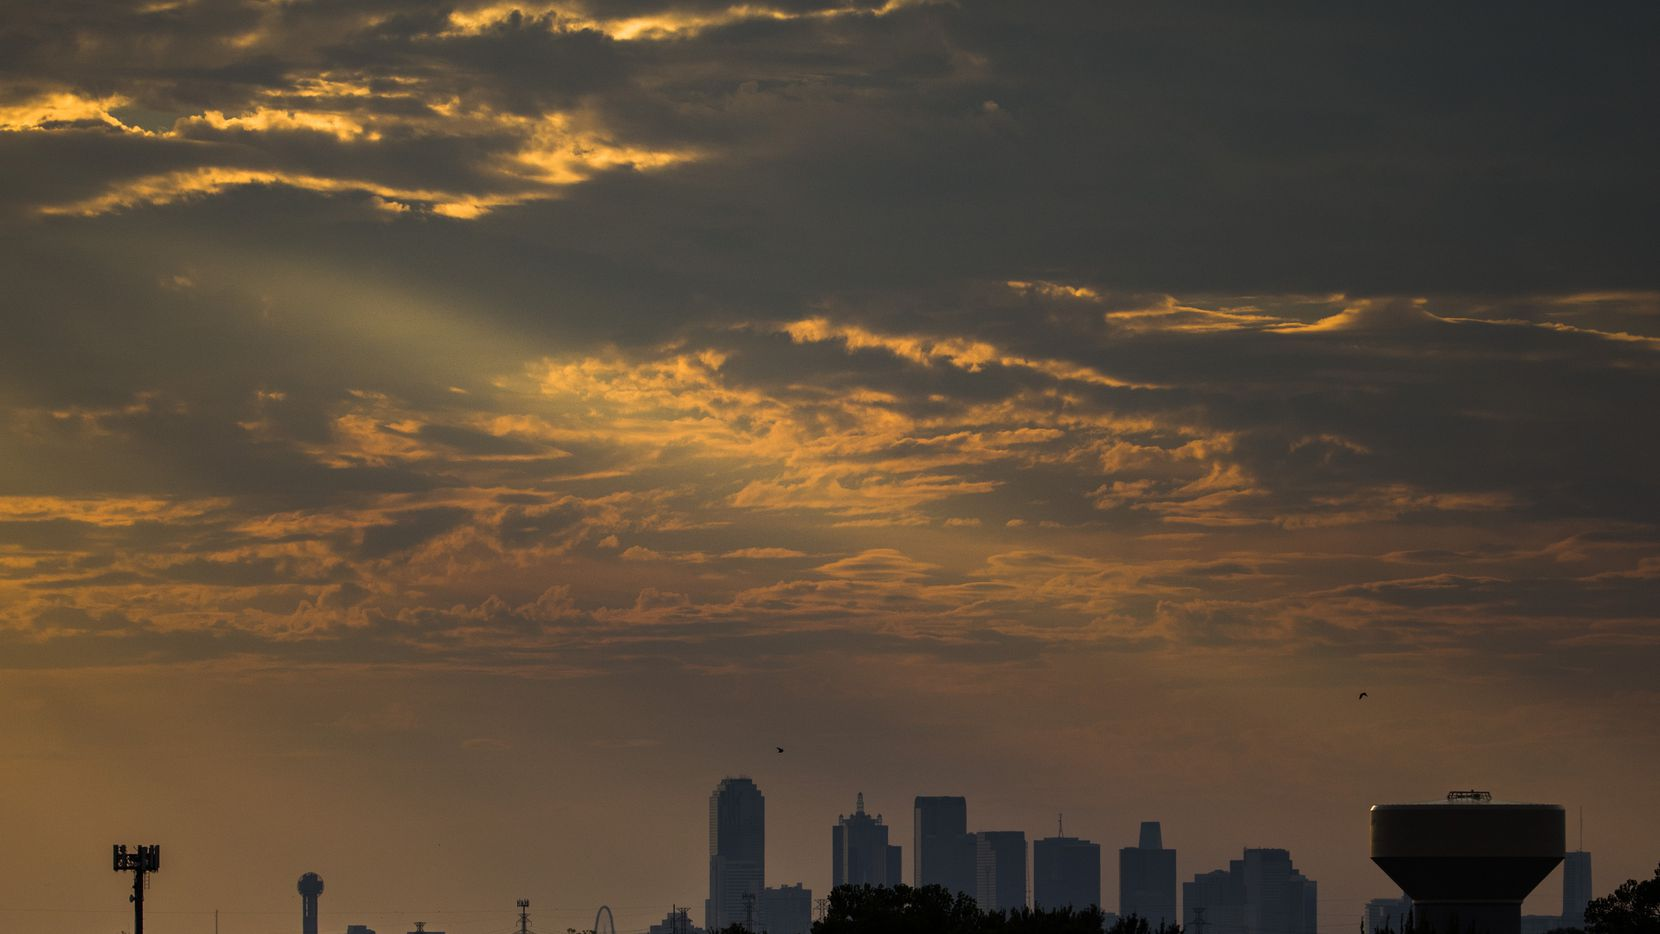 The Dallas skyline at sunset as seen from the top of Mesquite Memorial Stadium.